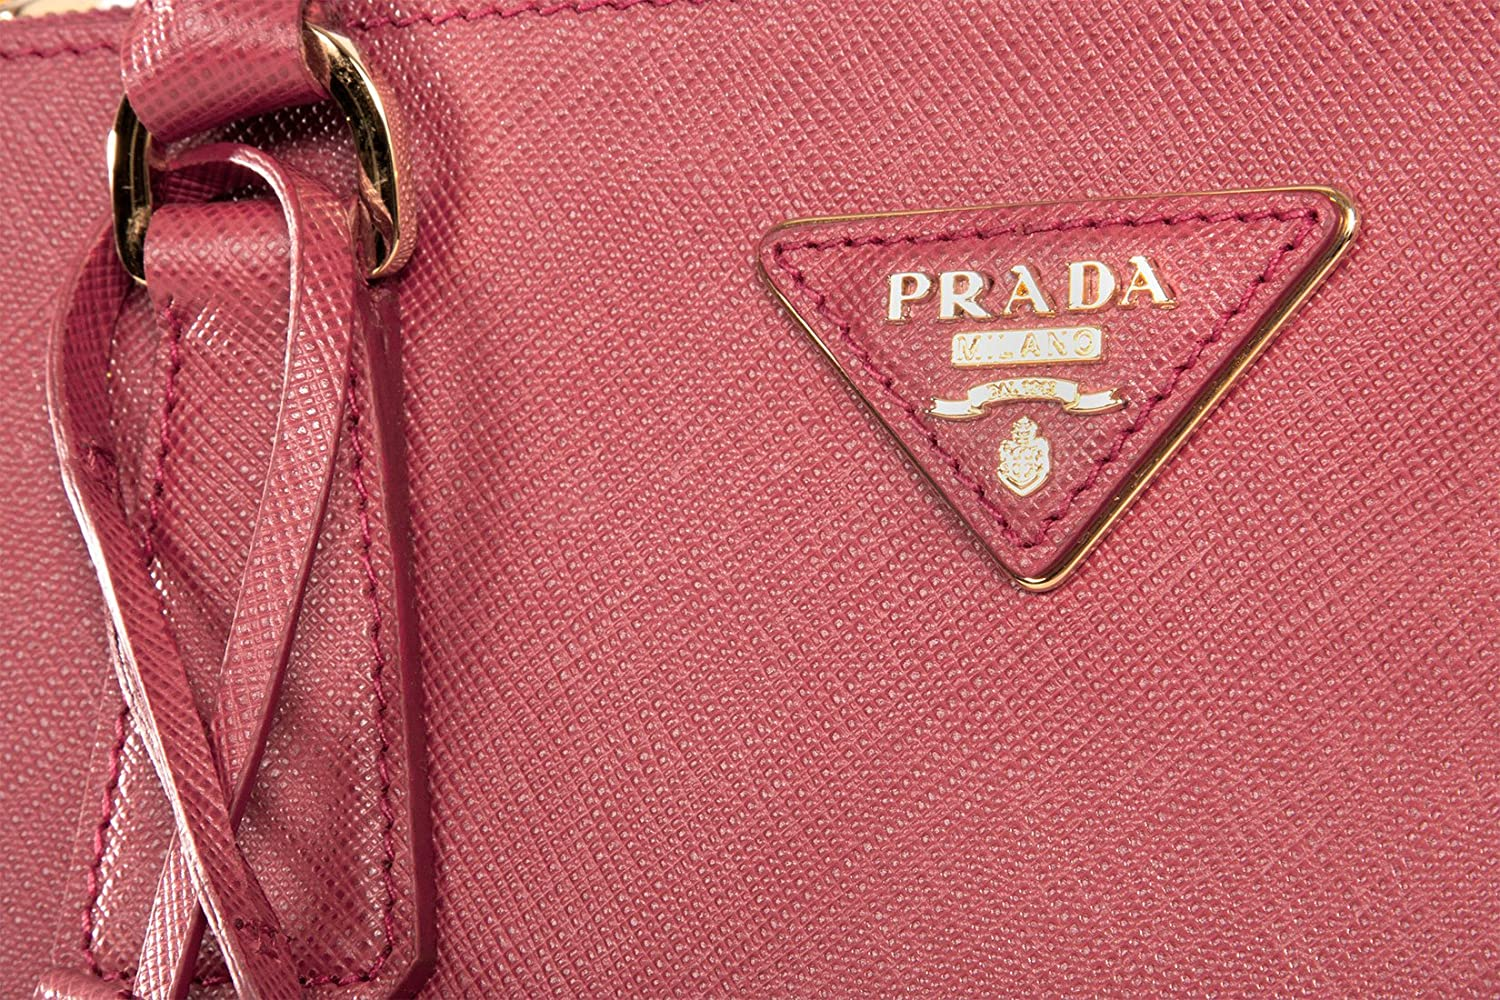 Prada BN2274 Authentic Bag - Pink Brughiera Saffiano Lux Calf ...